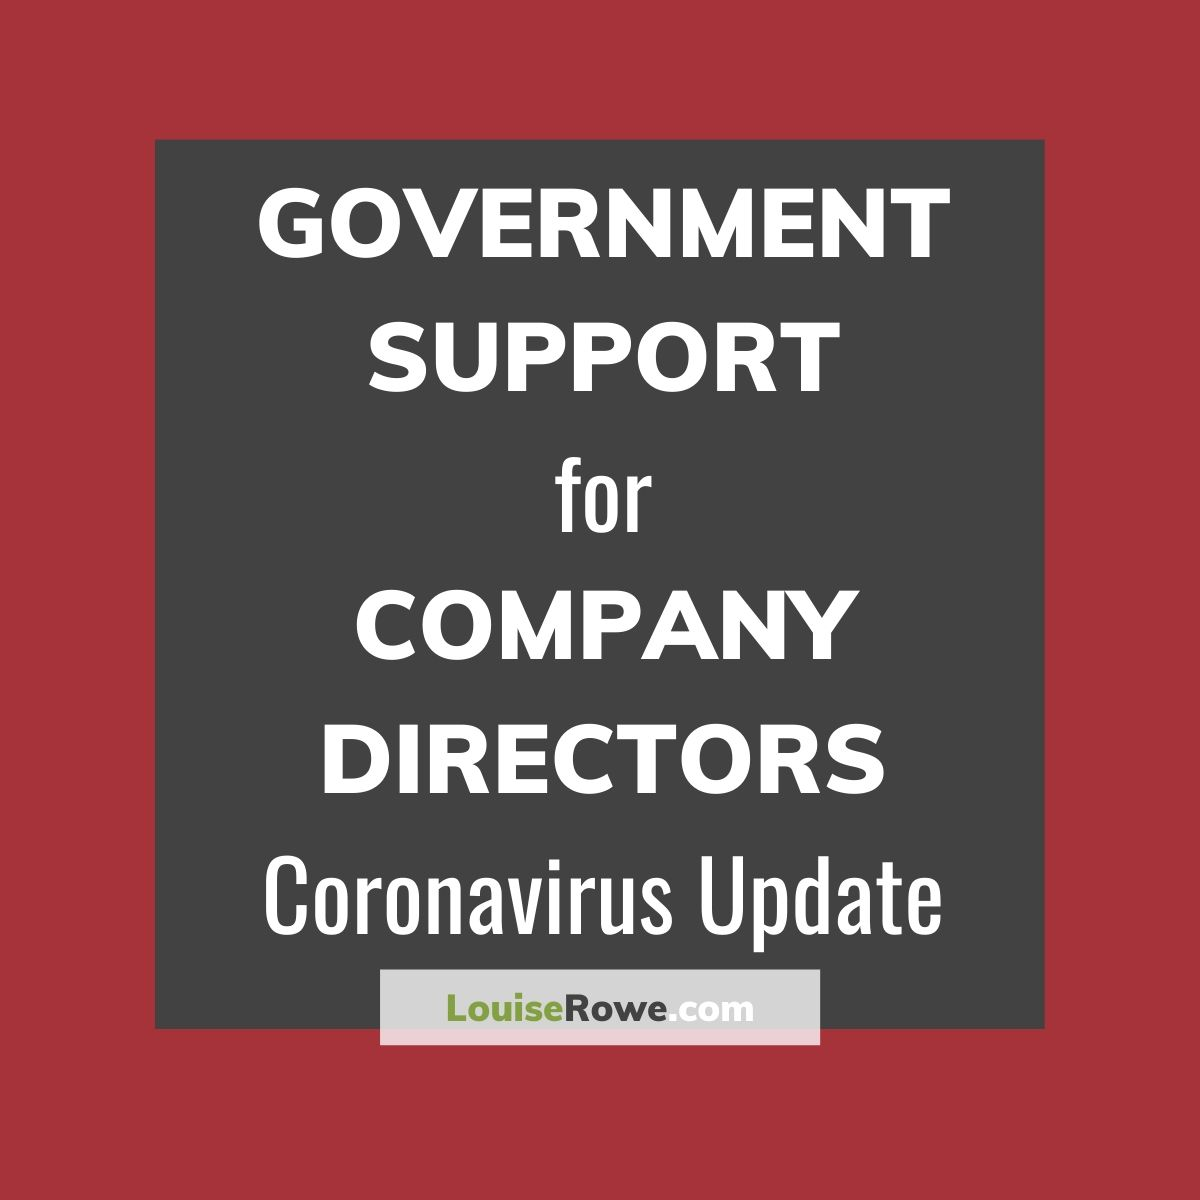 Government Support for Company Directors Coronavirus (title). Photo credit © L Rowe 2020